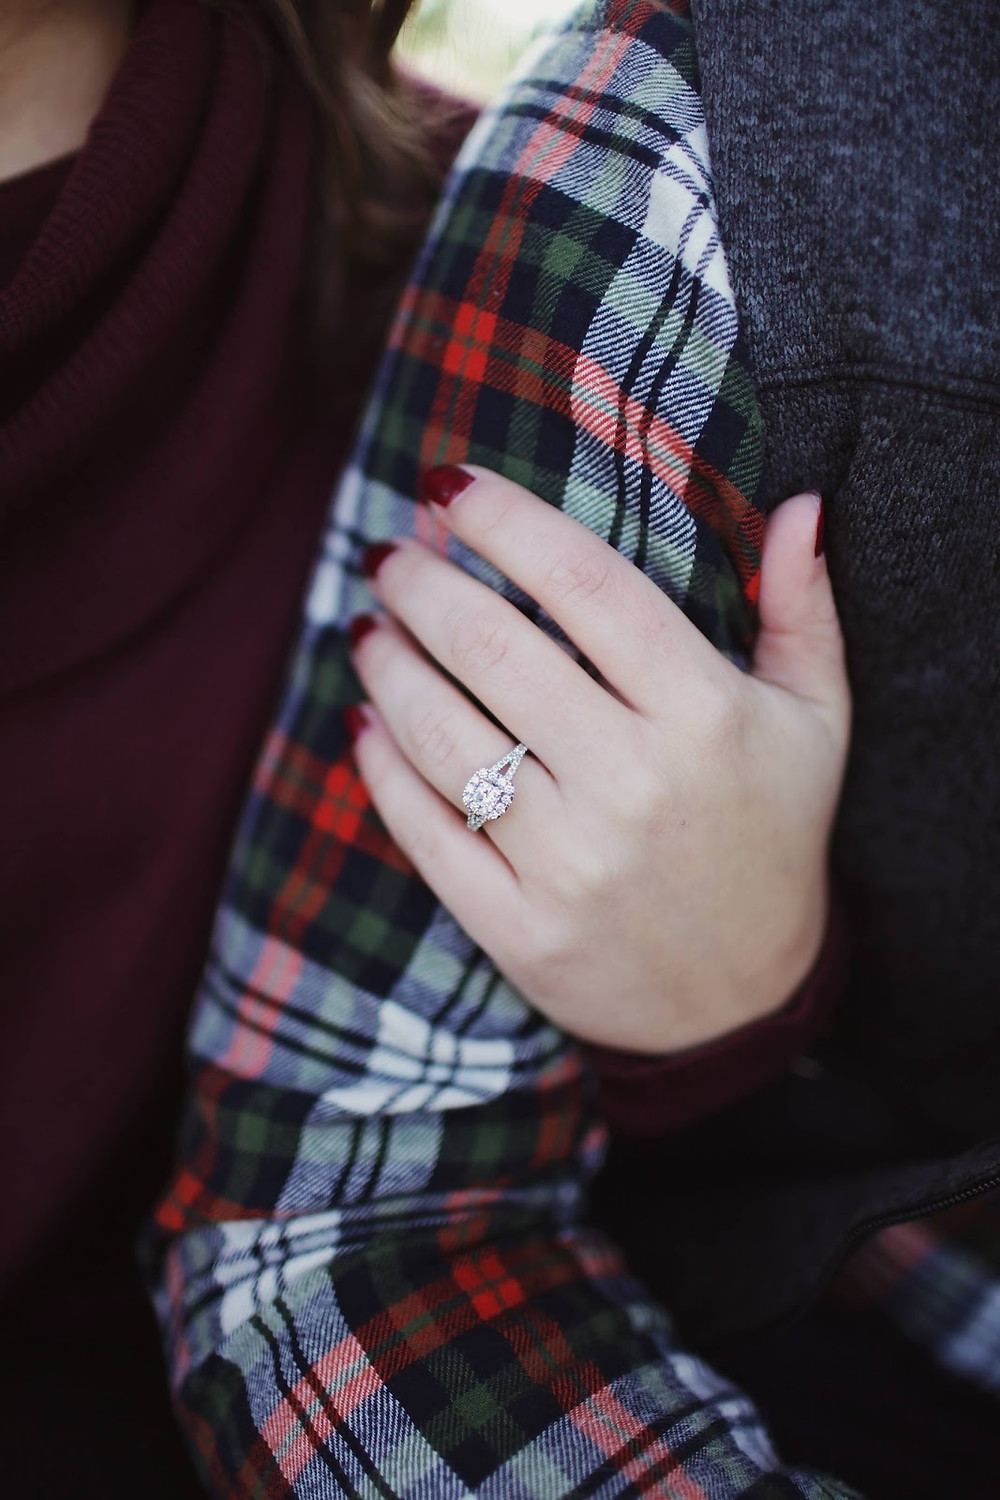 Diamond solitaire engagement ring on woman